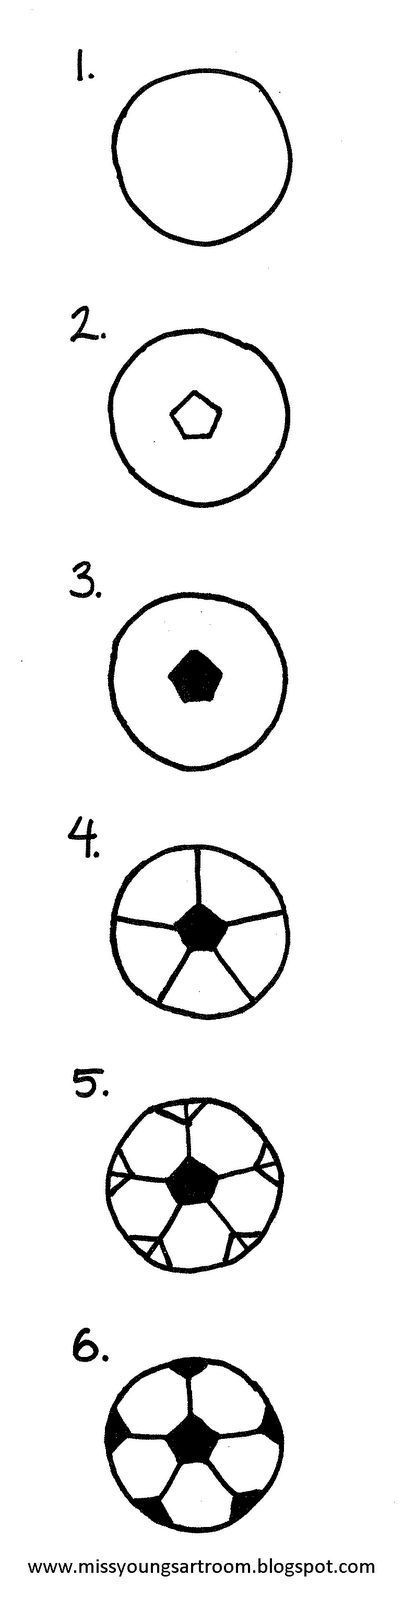 Miss Young's Art Room: How To Draw A Soccer Ball.